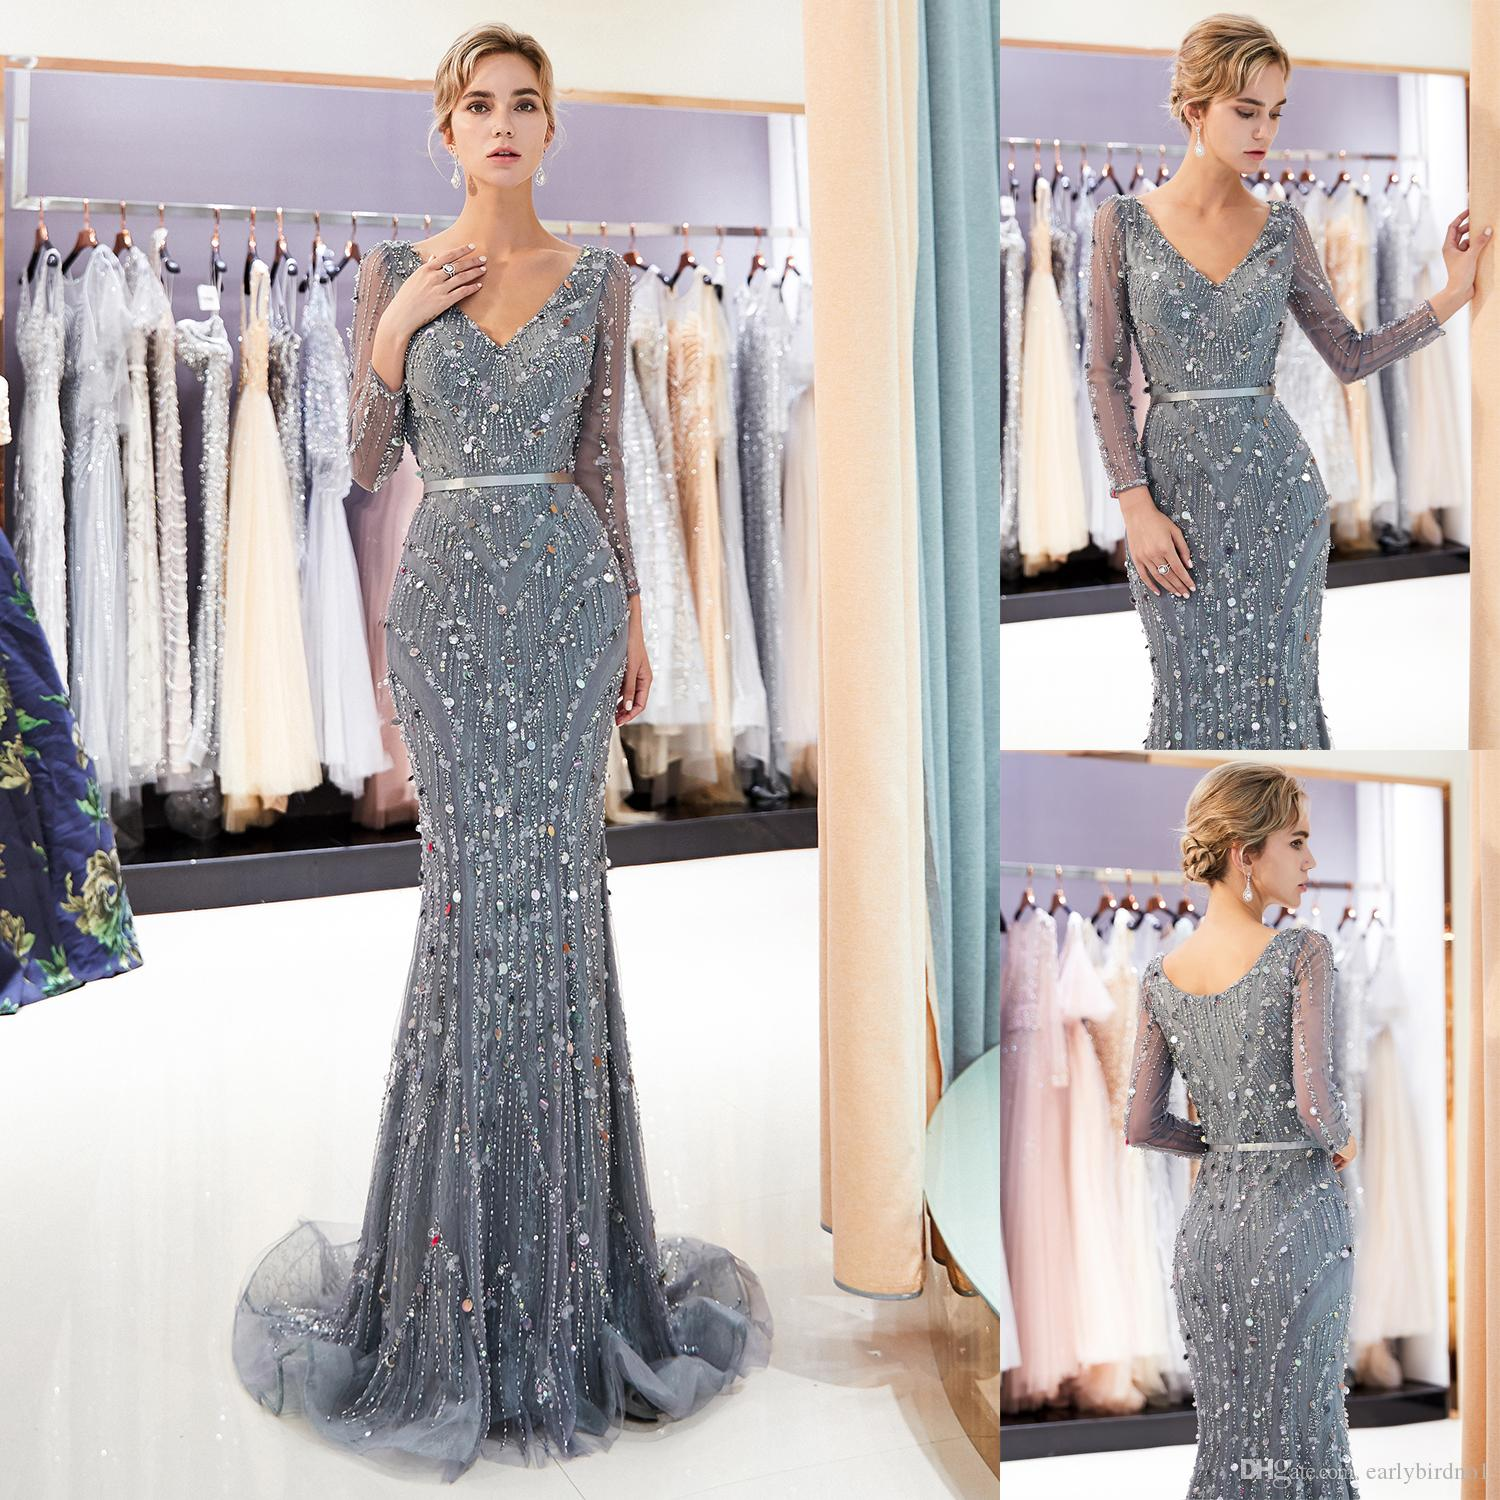 6ebb591374 Long Sleeves V Neck Gray Mermaid Evening Dresses Designer Sweep Train  Formal Occasion Wear Wedding Party Gown 100% Real Image CPS1174